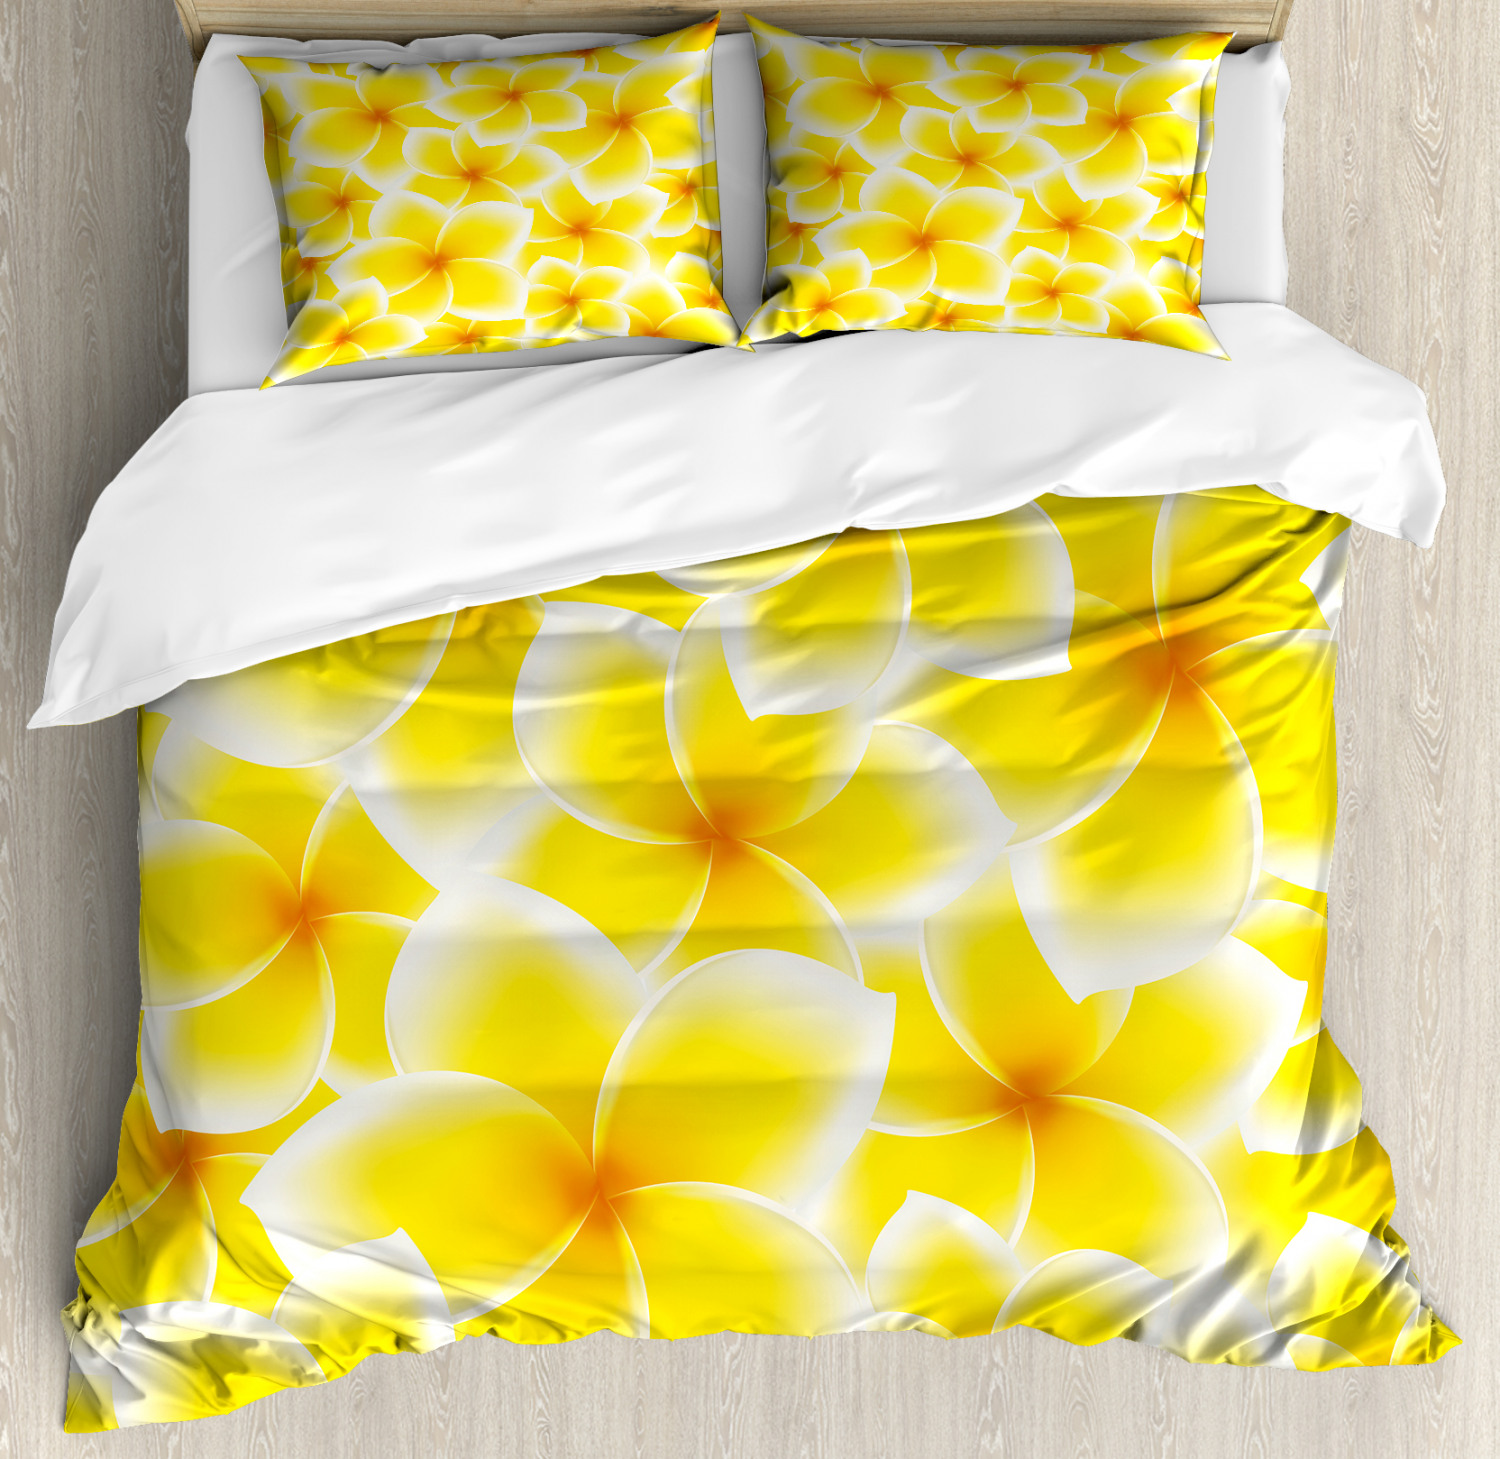 Yellow Duvet Cover Set Plumeria Frangipani Asian Cute Flower Blossom Pattern Hawaiian Style Artwork Decorative Bedding Set With Pillow Shams Yellow And White By Ambesonne Walmart Com Walmart Com